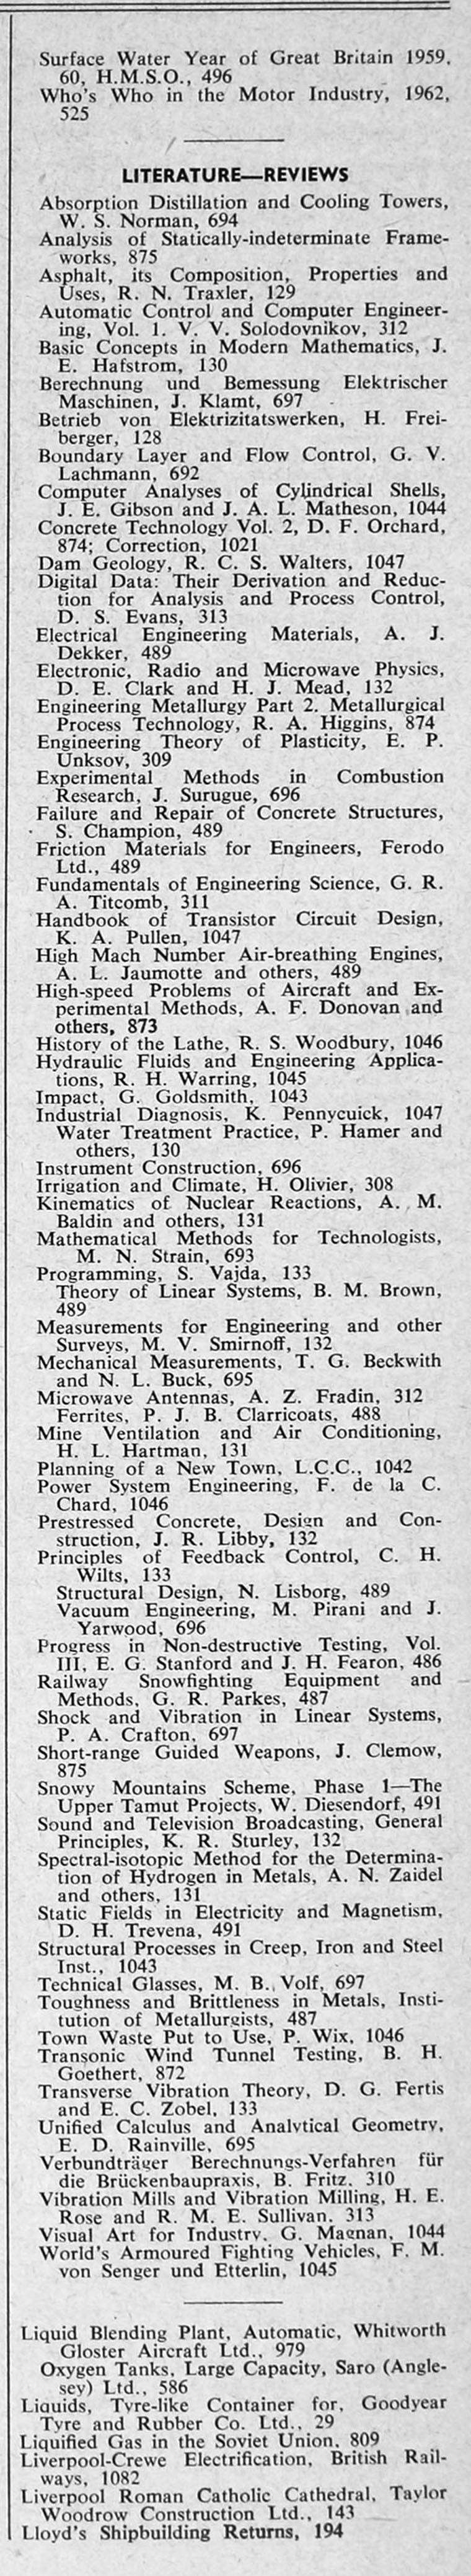 The Engineer 1962 Jan-Jun: Index: Sections 2 and 3